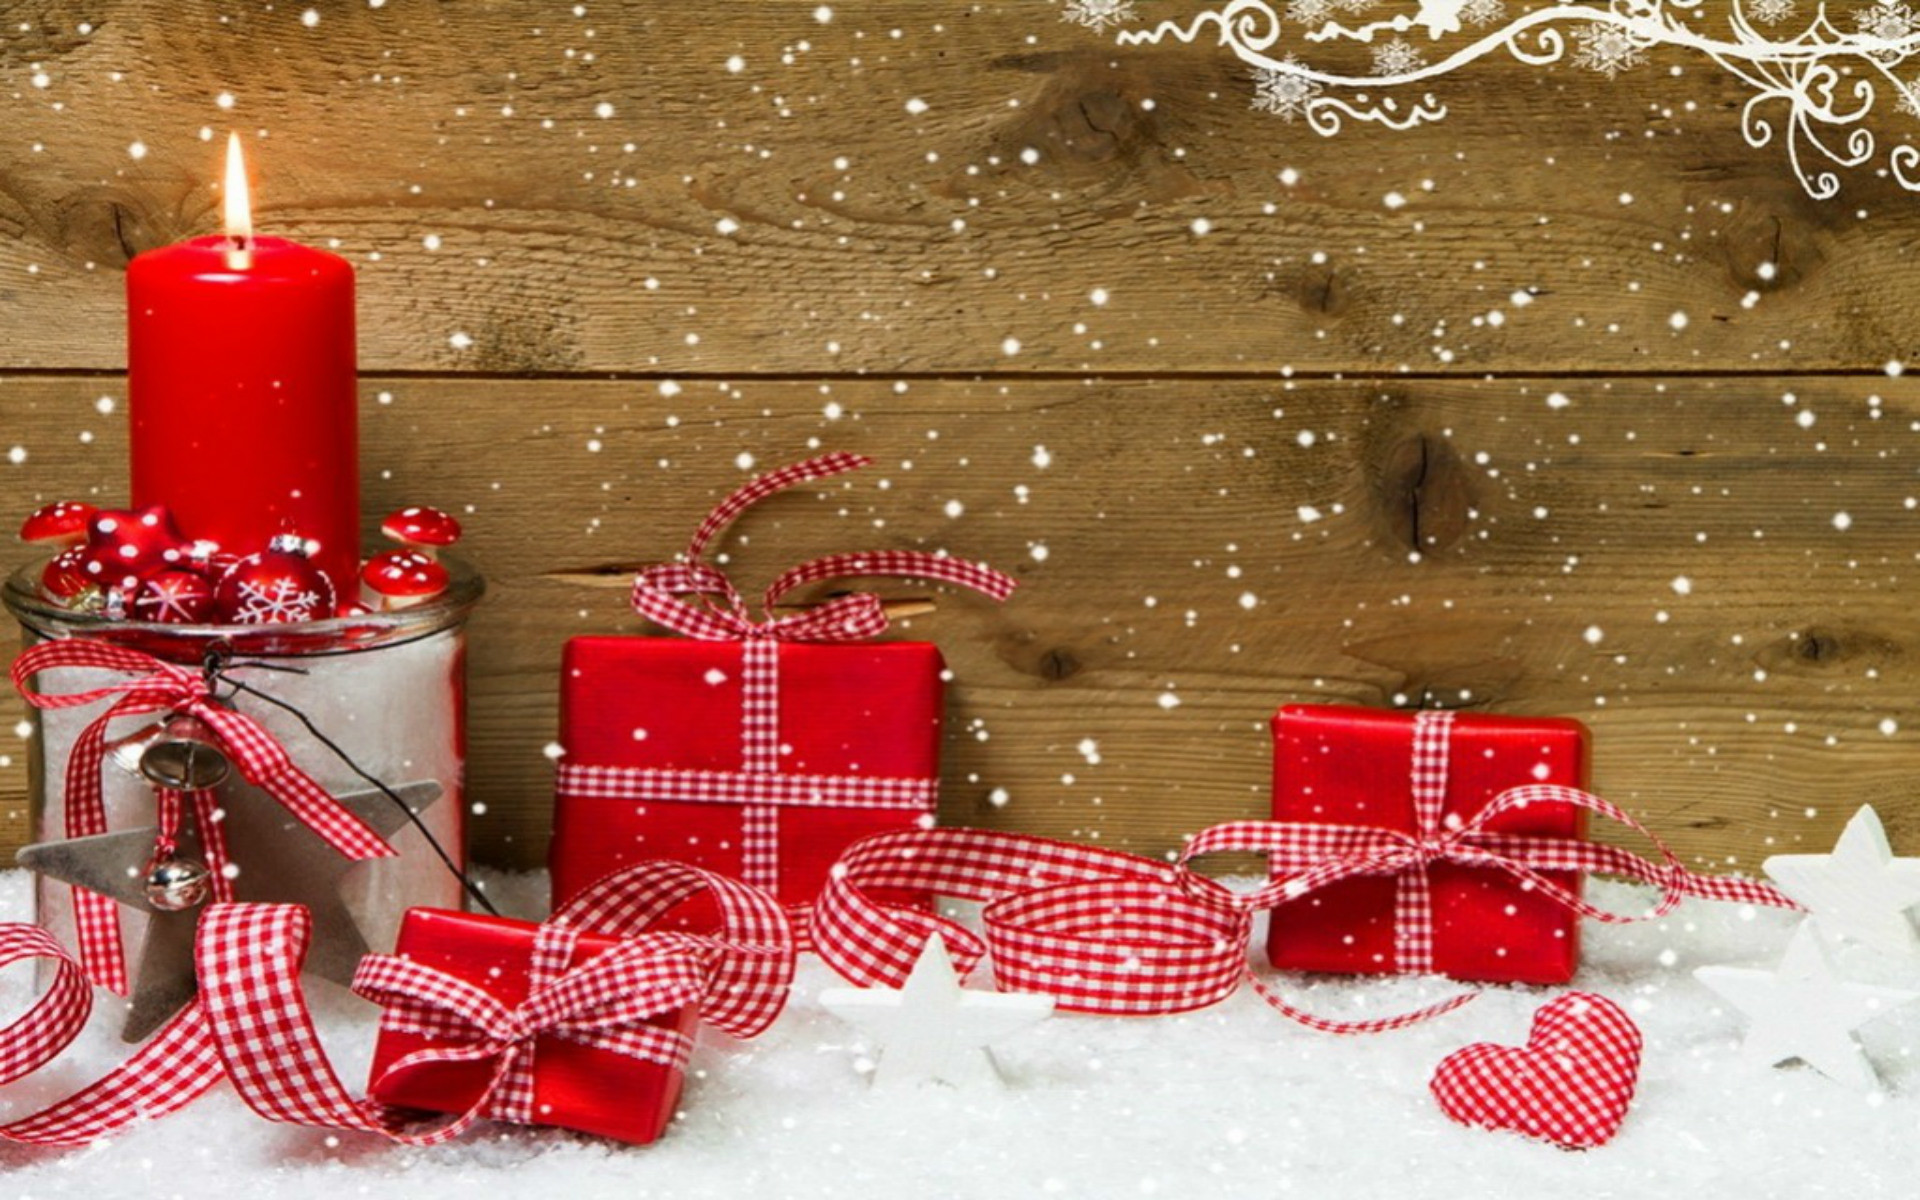 1920x1200 tags christmas desktop backgrounds free christmas desktop backgrounds free animated christmas images - Free Animated Christmas Wallpaper